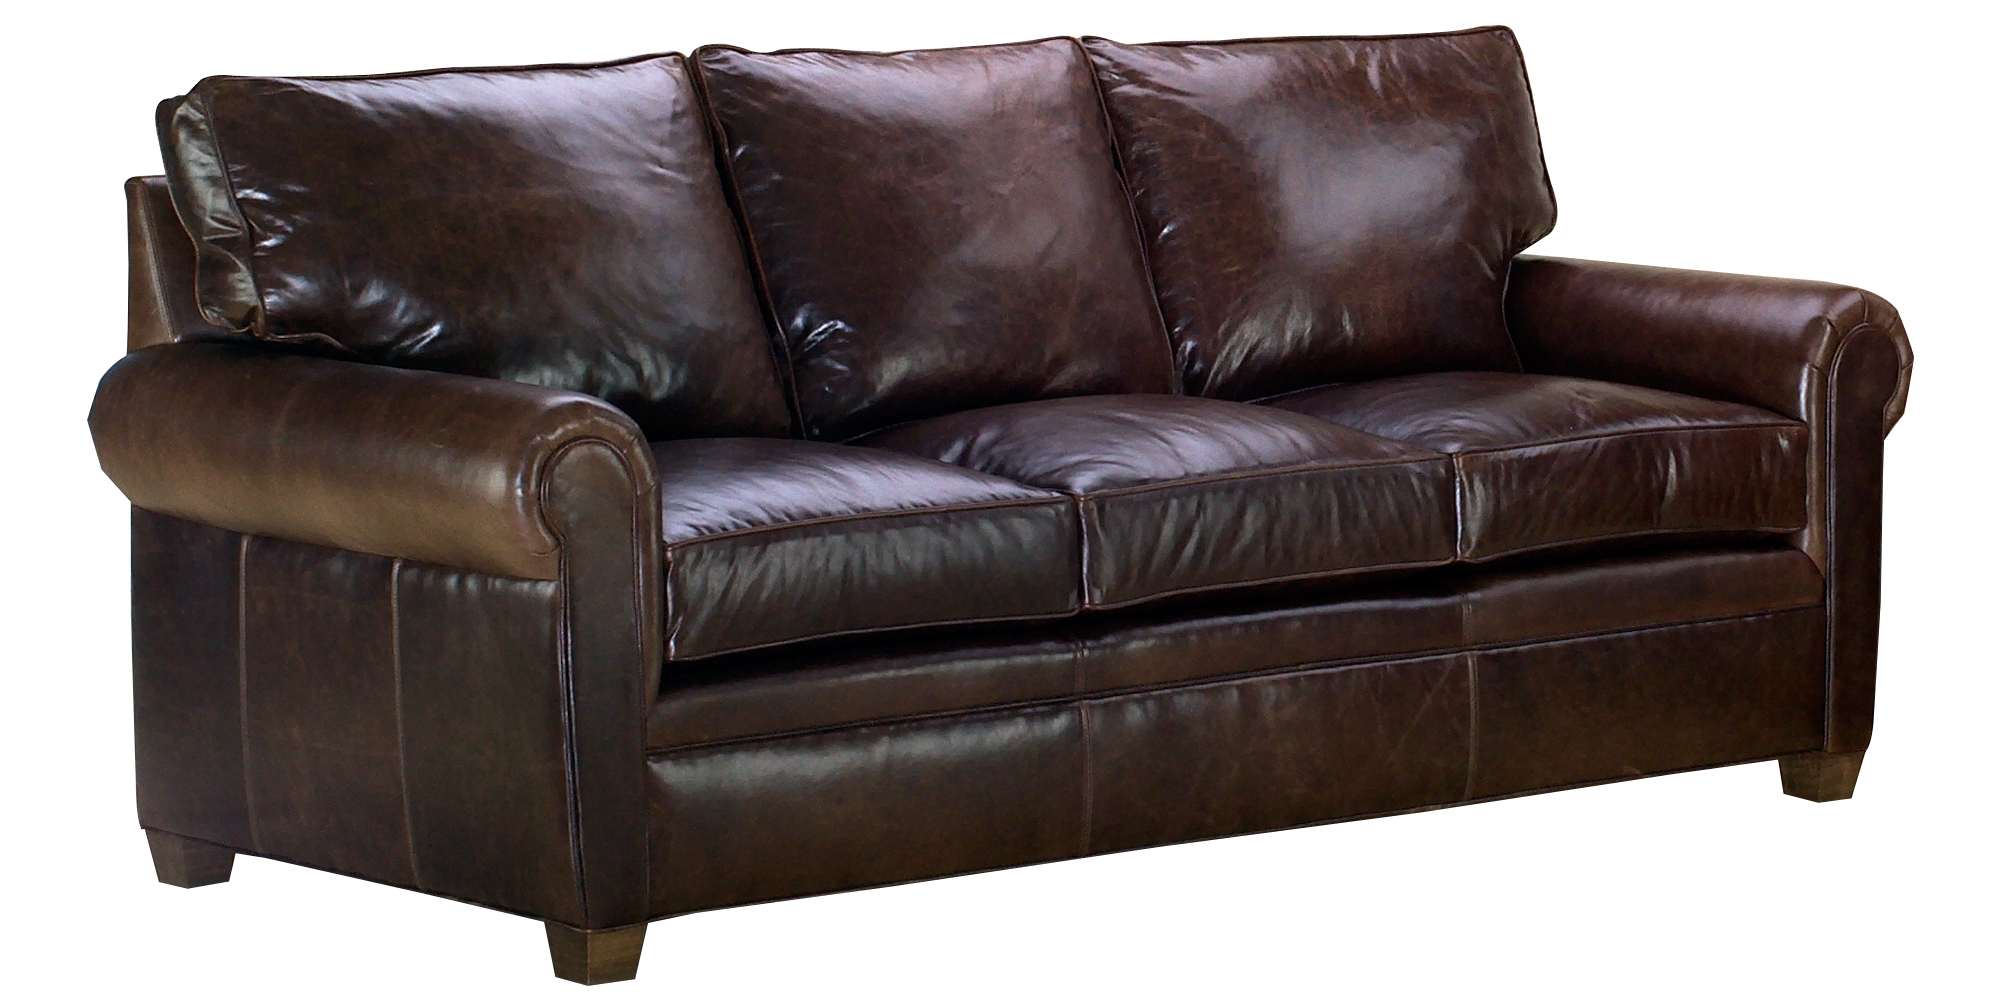 Classic leather sofa set with traditional rolled arms for Furniture leather sofa